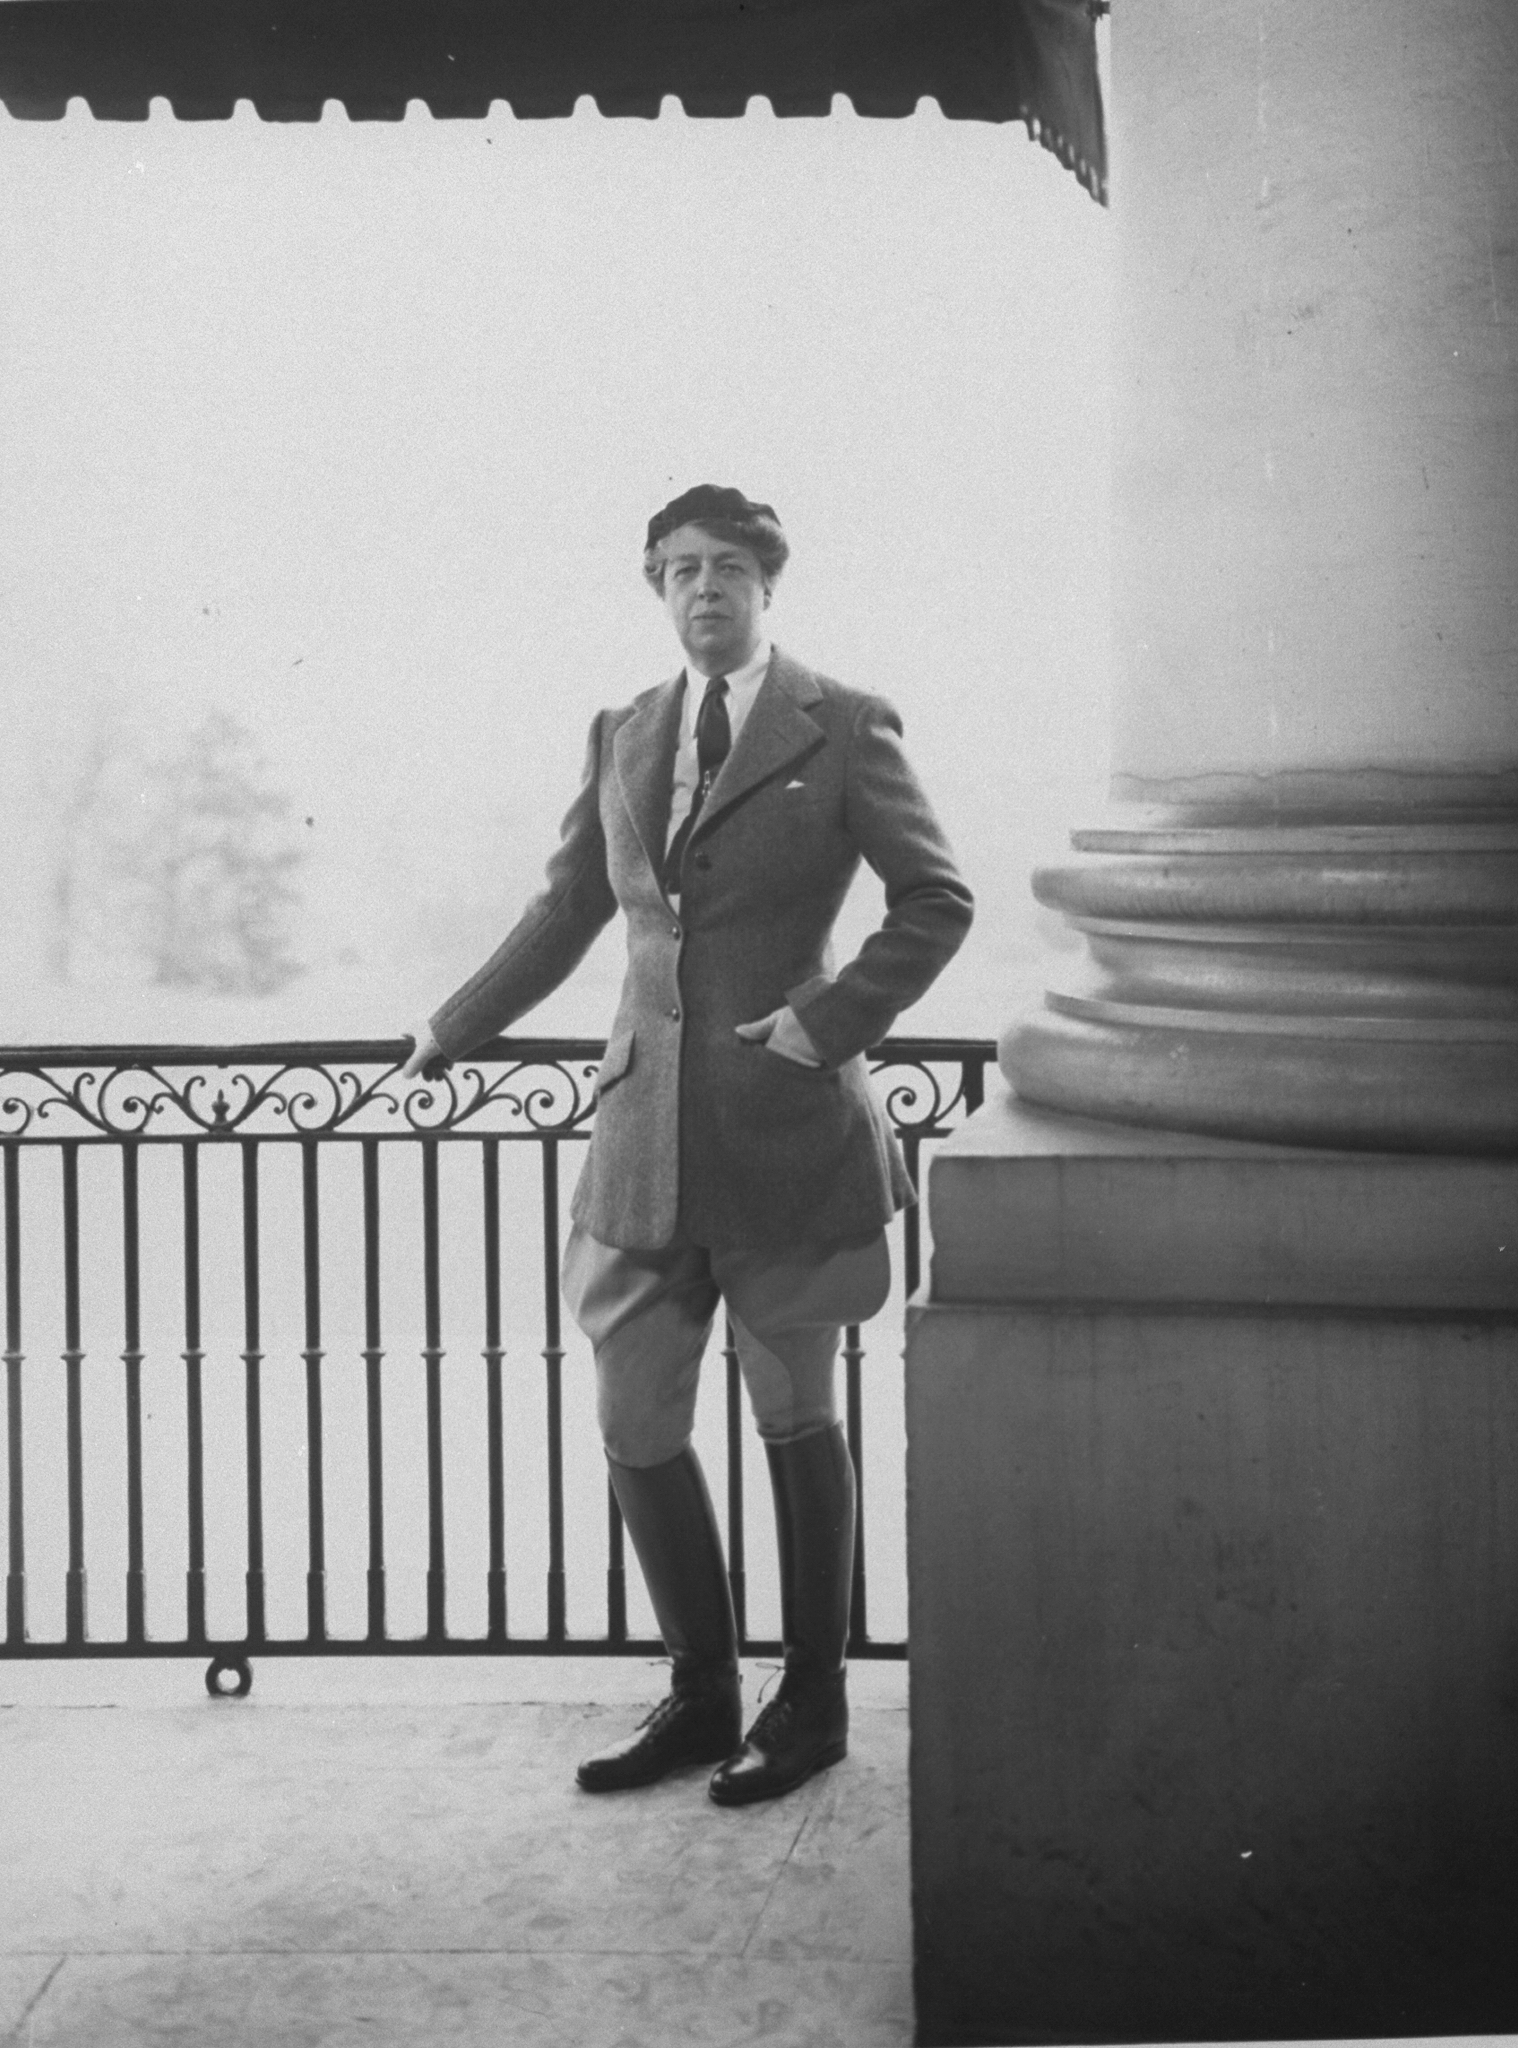 First Lady Eleanor Roosevelt wearing riding breeches and boots posing for photo on the East Portico of the White House in 1934.